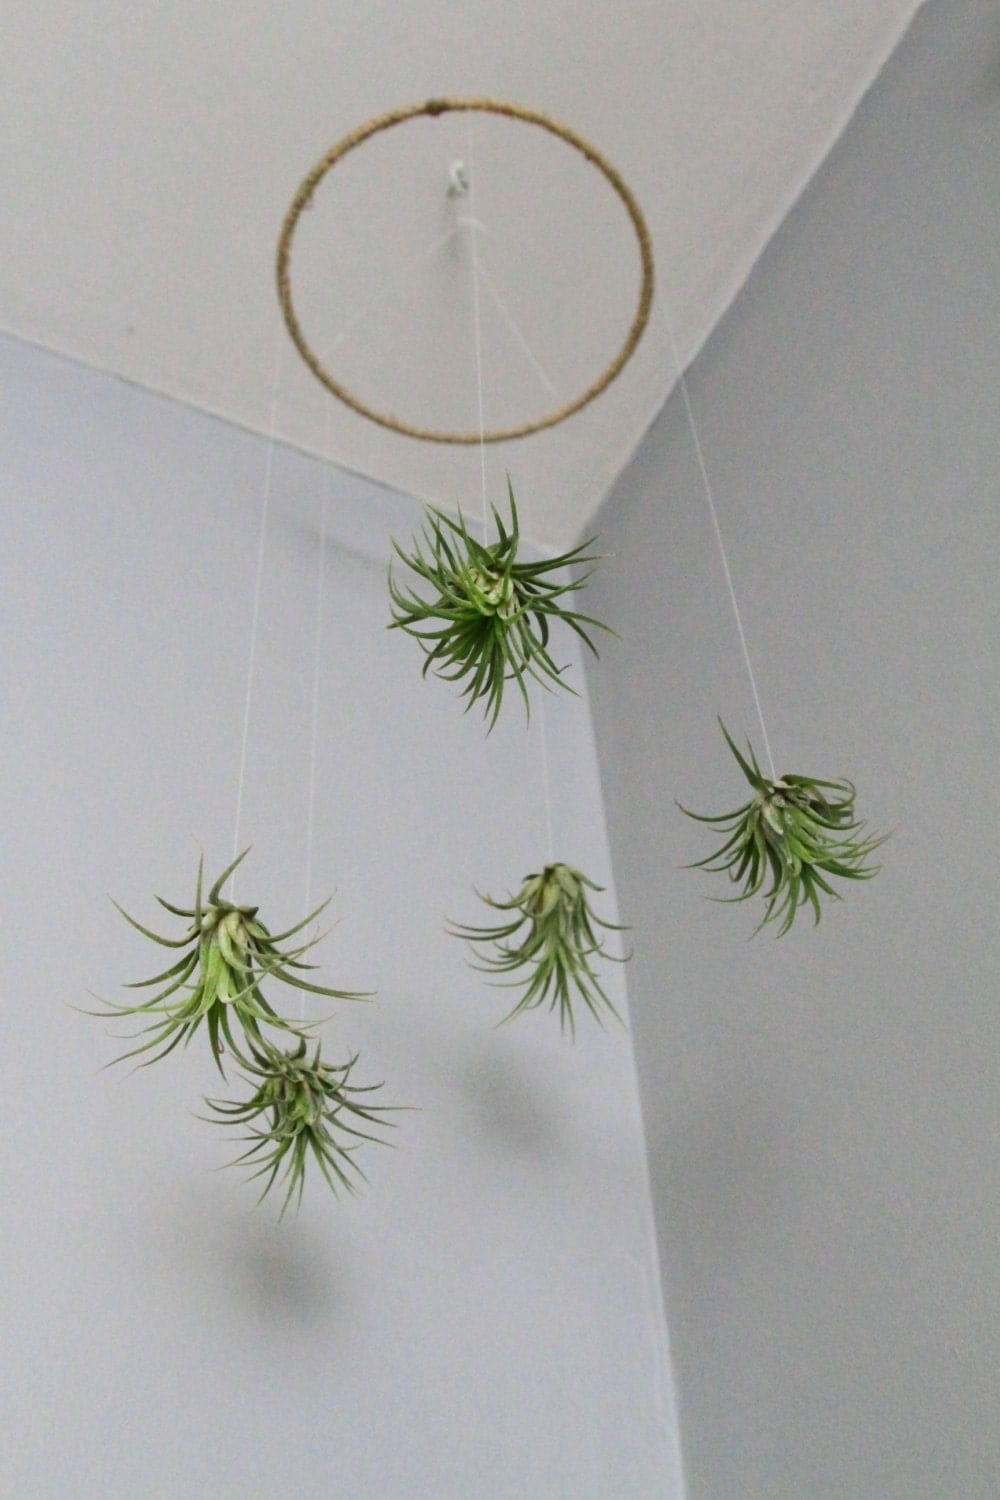 Air plant mobile natural living decor home decor for Air plant decoration